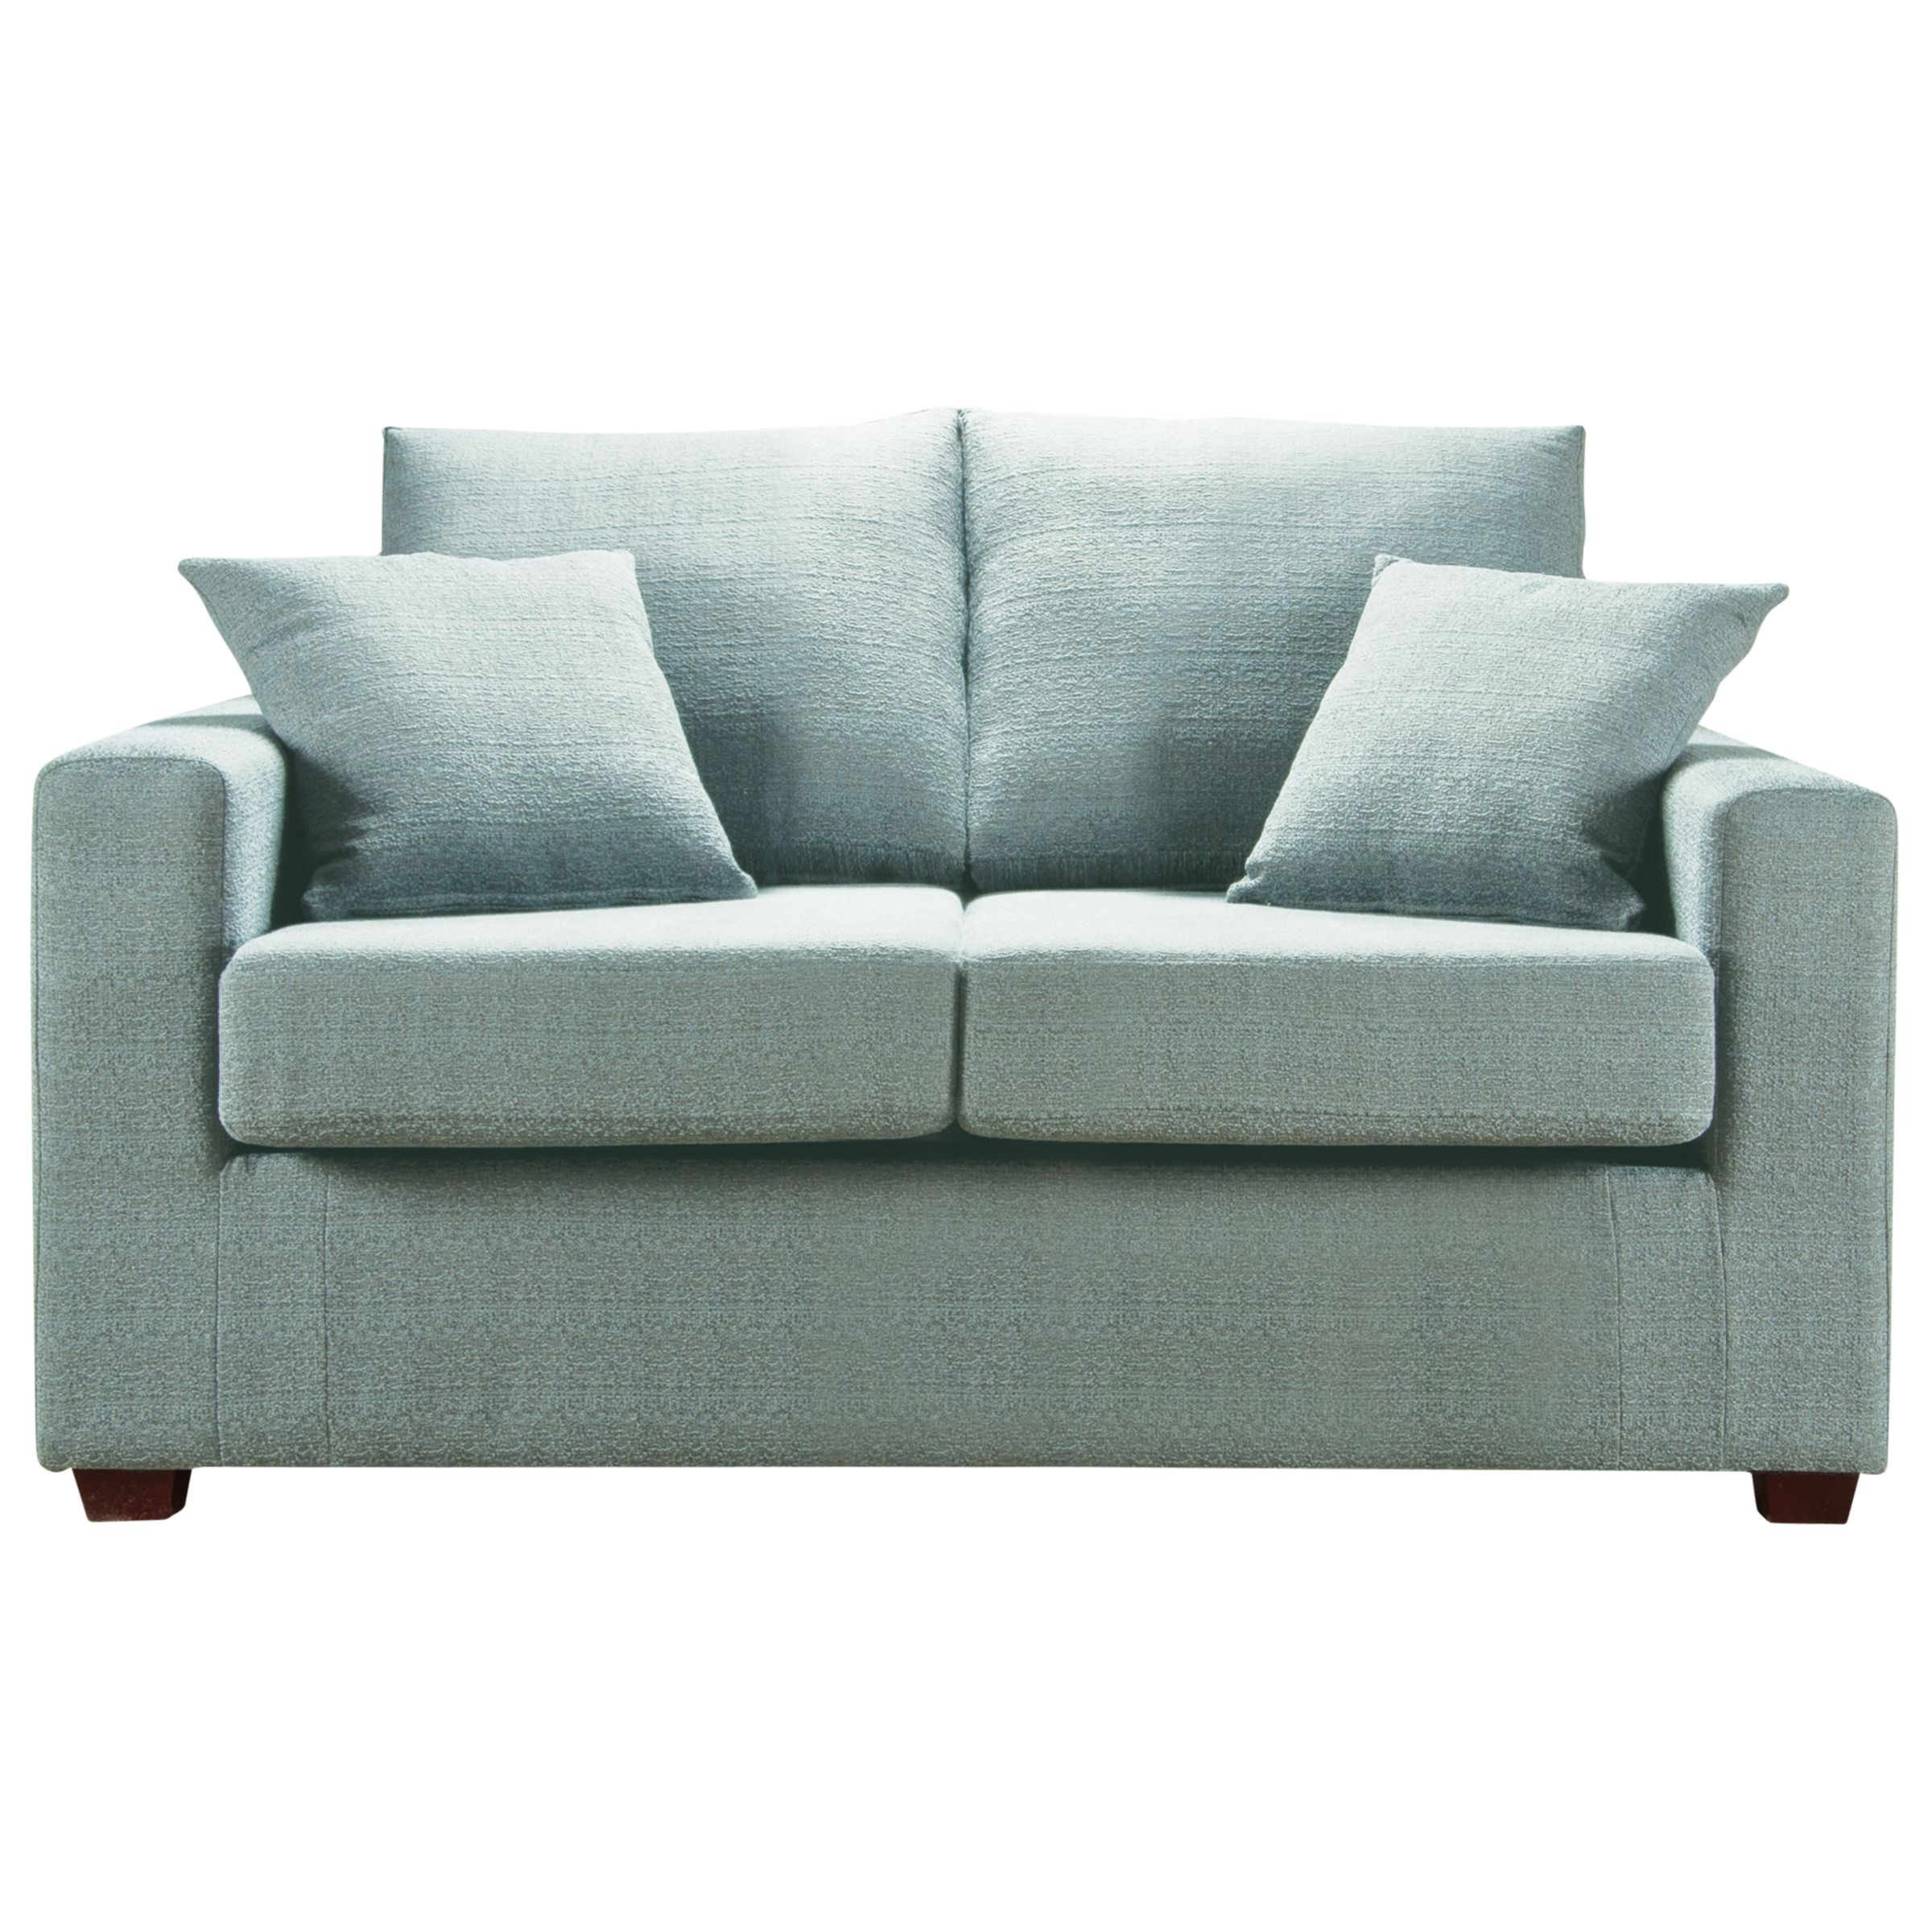 sleeper sofa comparison in chicago john lewis ravel small bed glacier review compare